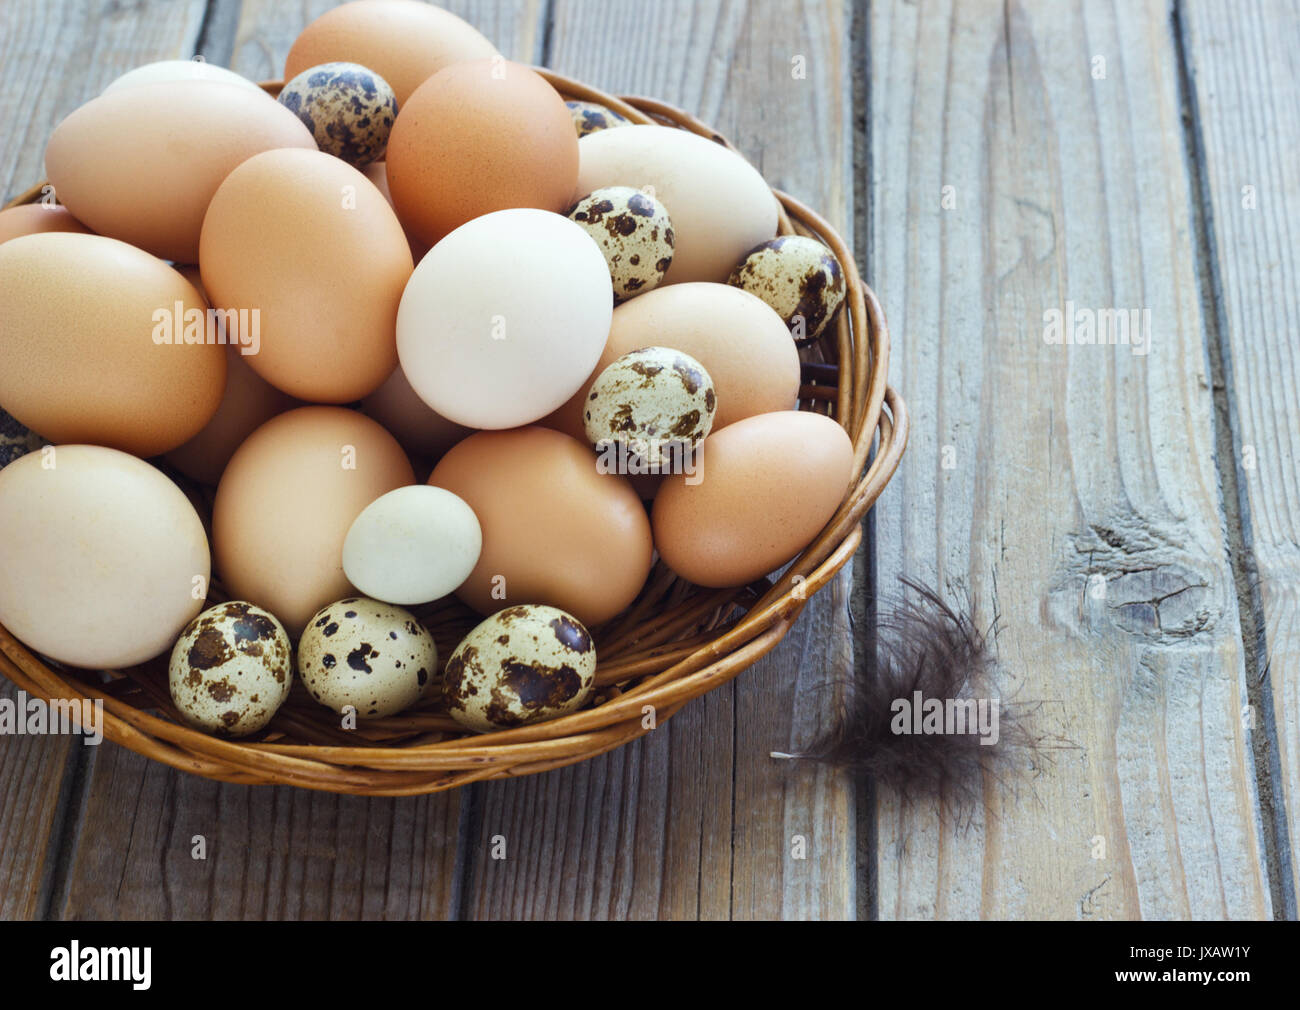 Eggs from chicken and quail farm in a wicker basket. - Stock Image